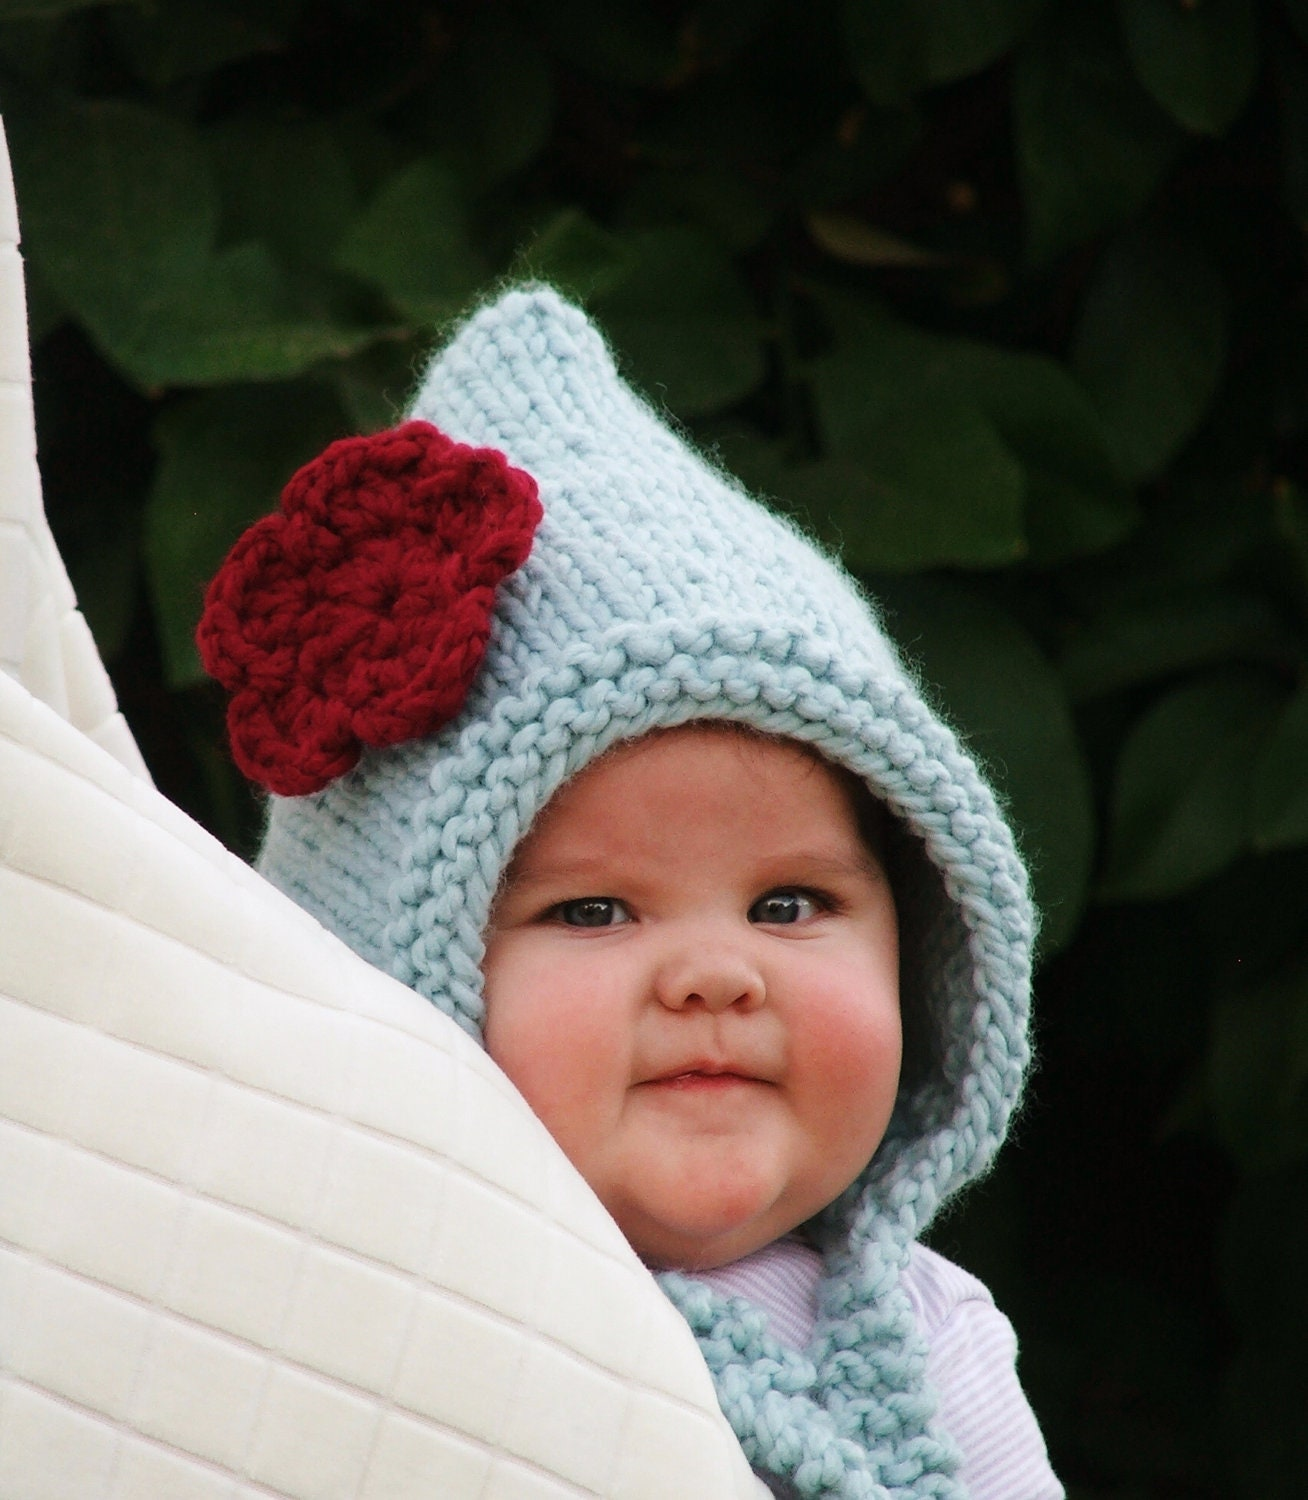 Knitting Patterns For Baby Elf Hats : Knitted Elf Hat